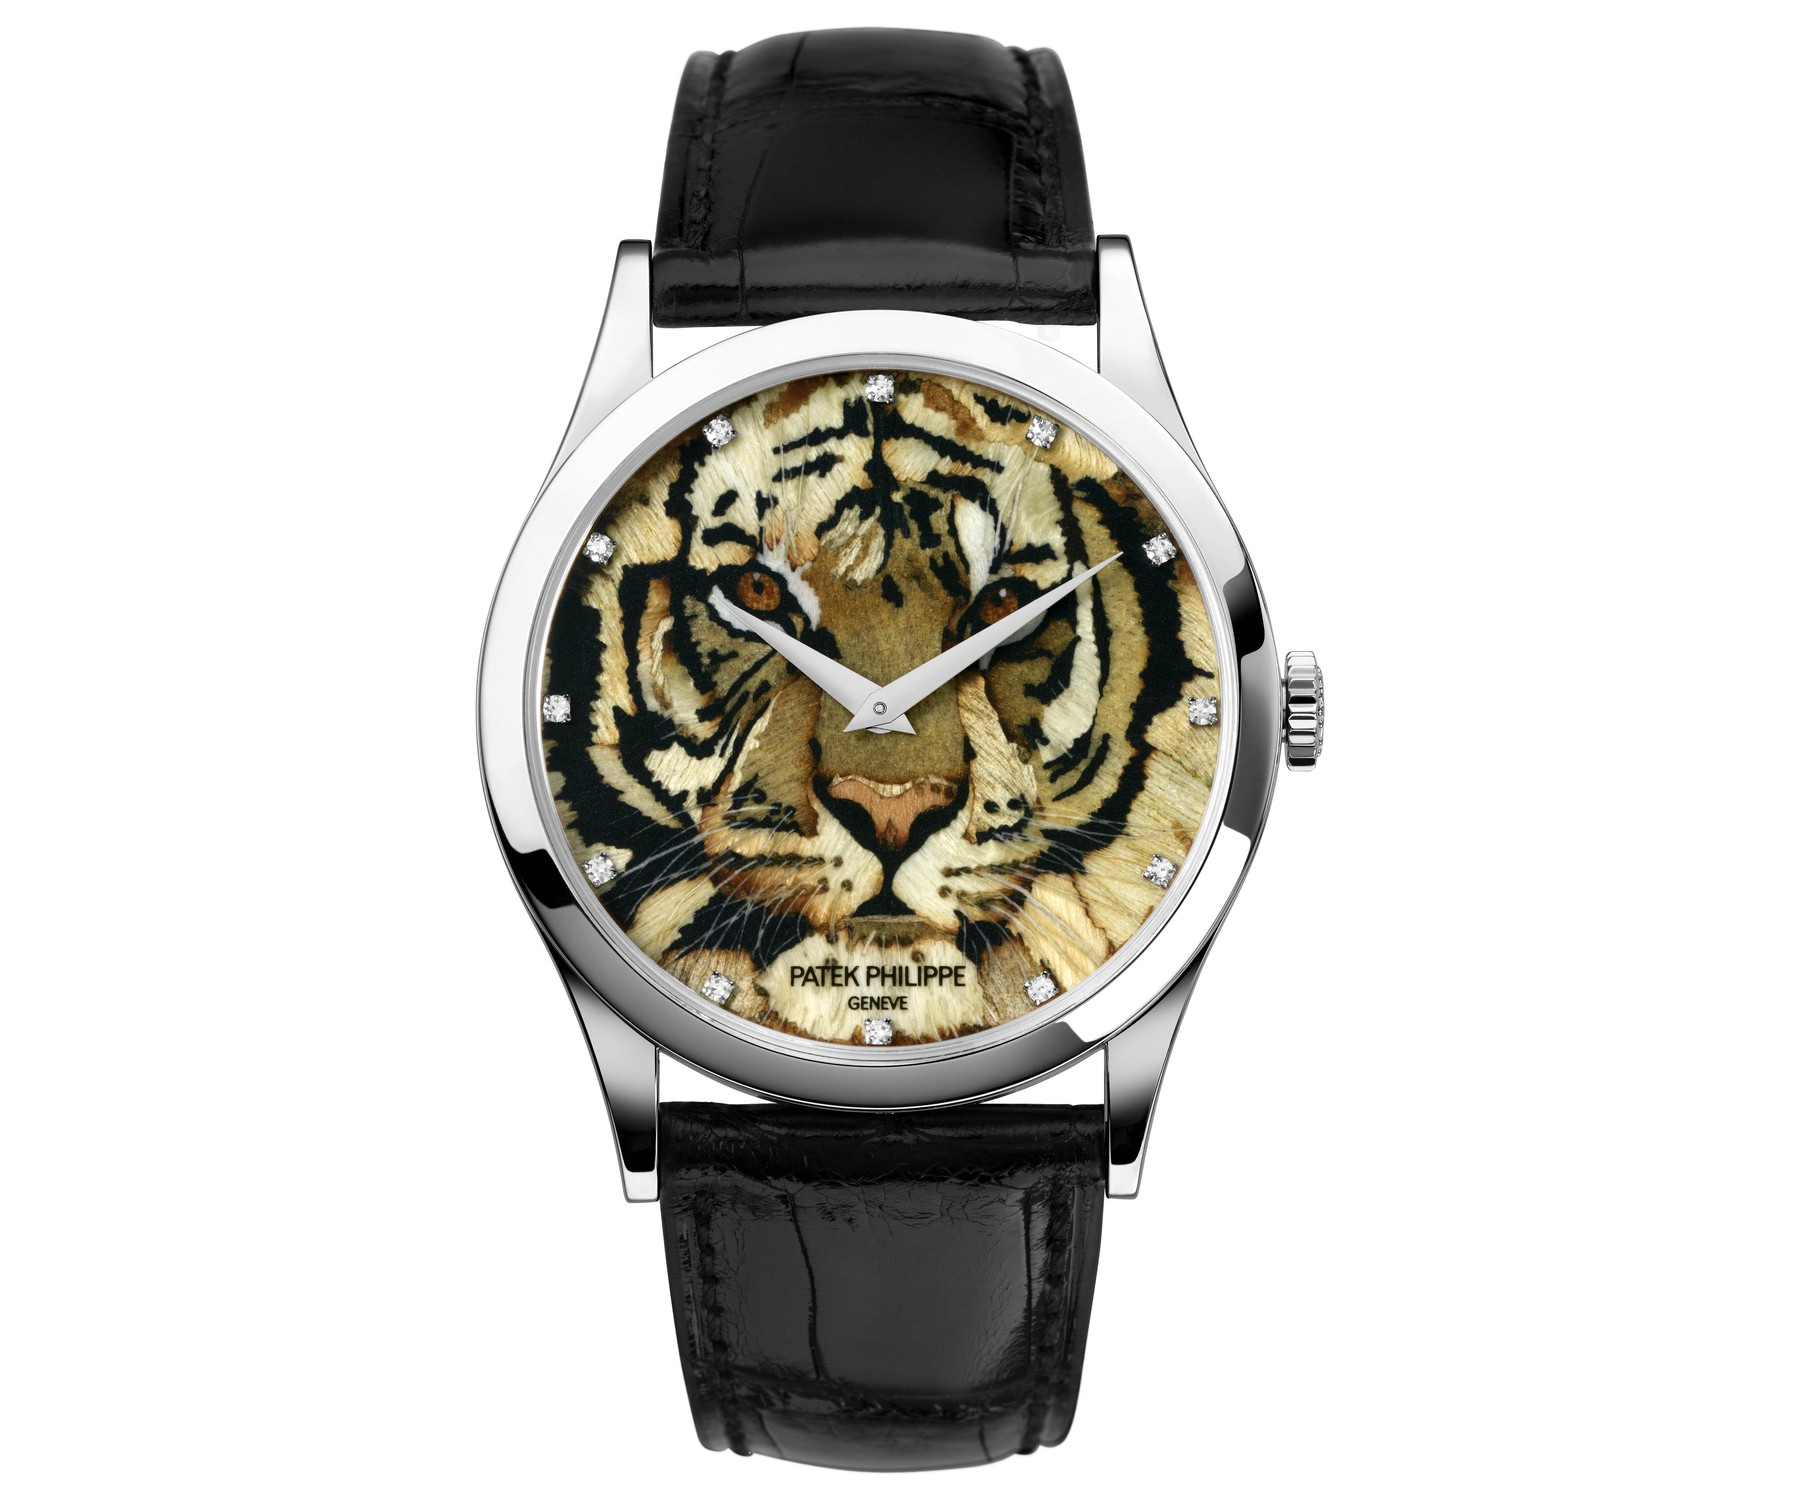 Baselworld 2019 Miniature Marquetry Art in Haute Horlogerie - Royal Tiger wristwatch baselworld 2019 Baselworld 2019: Miniature Marquetry Art in Haute Horlogerie Baselworld 2019 Miniature Marquetry Art in Haute Horlogerie Royal Tiger wristwatch